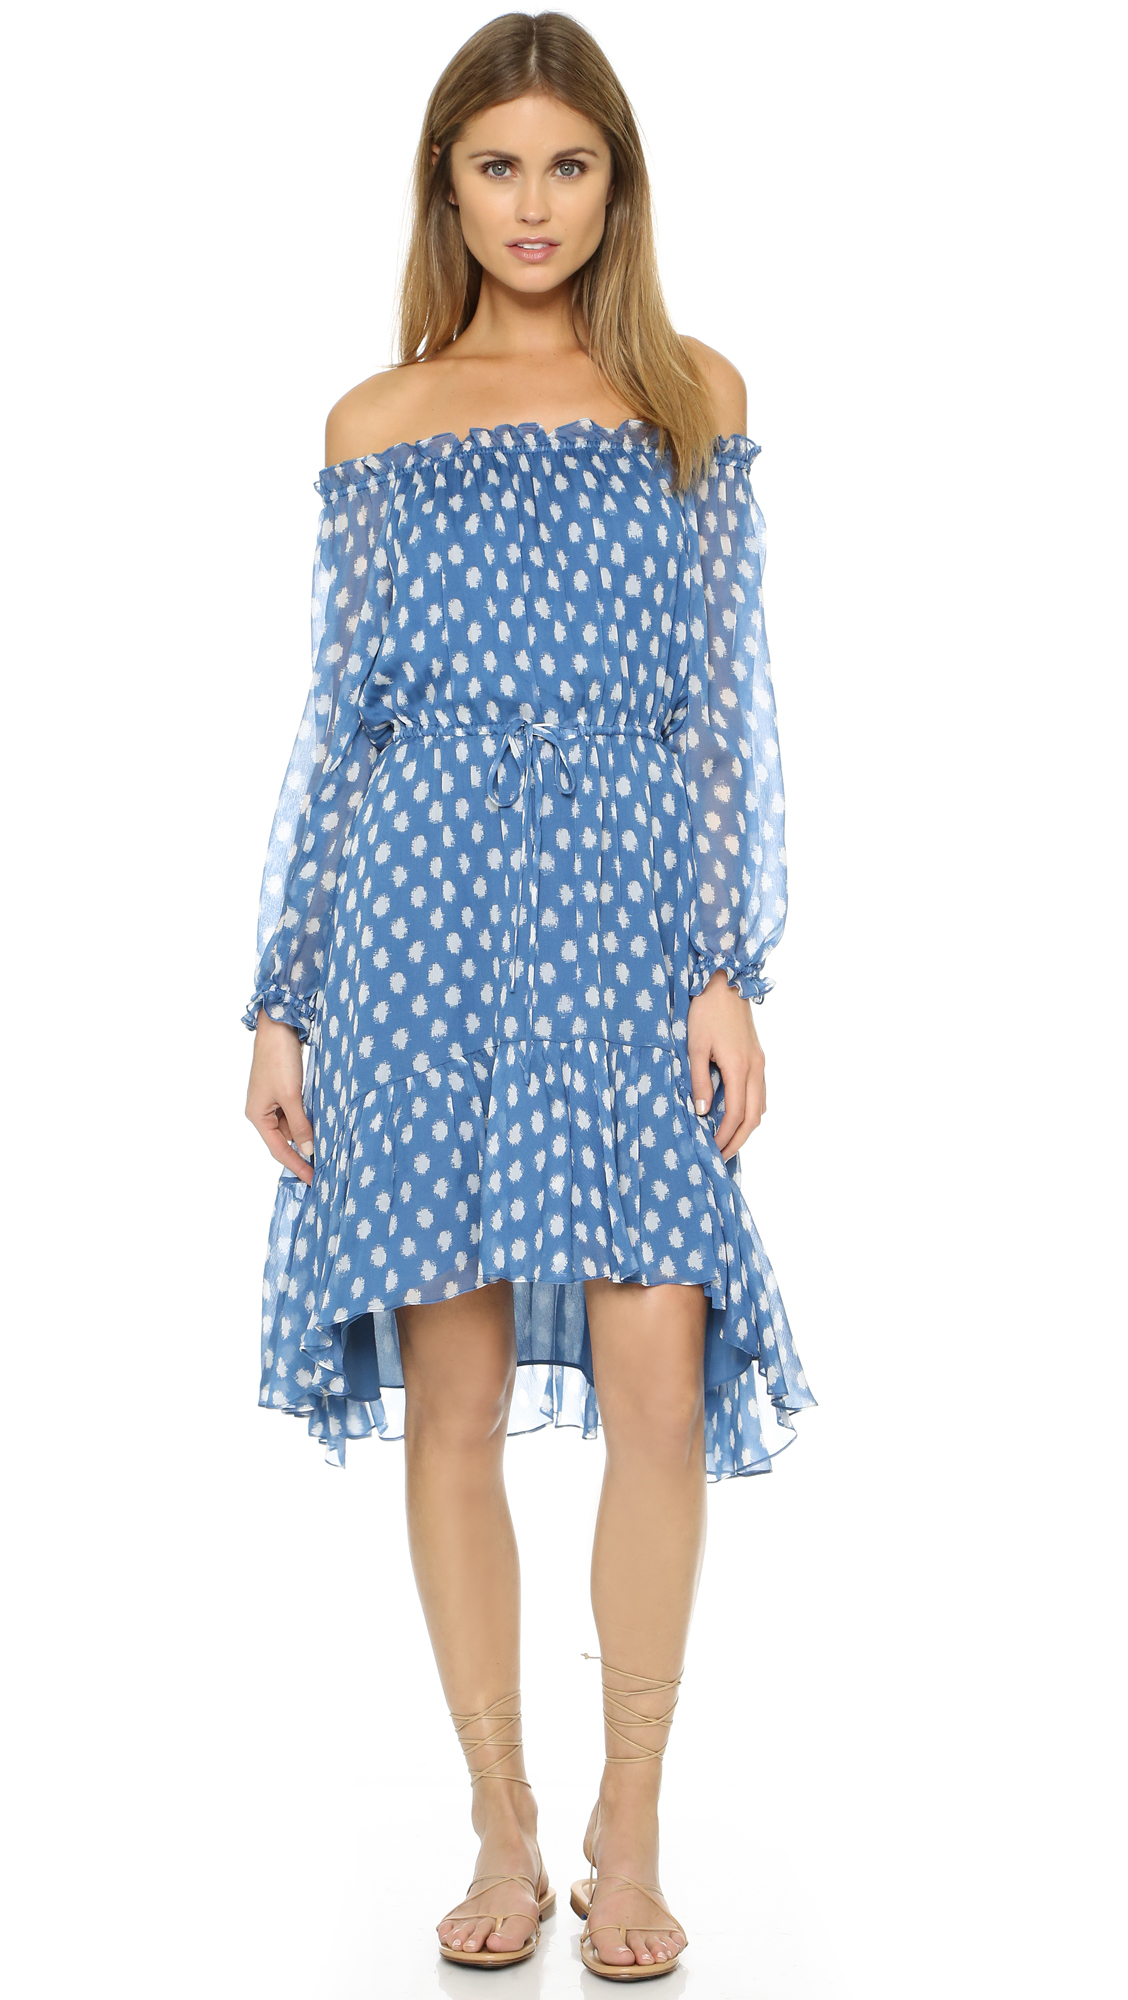 Traditional color combinations for cheap polka dot dresses were black dots on a white background, white dots on a black background, white on navy blue, navy blue on .